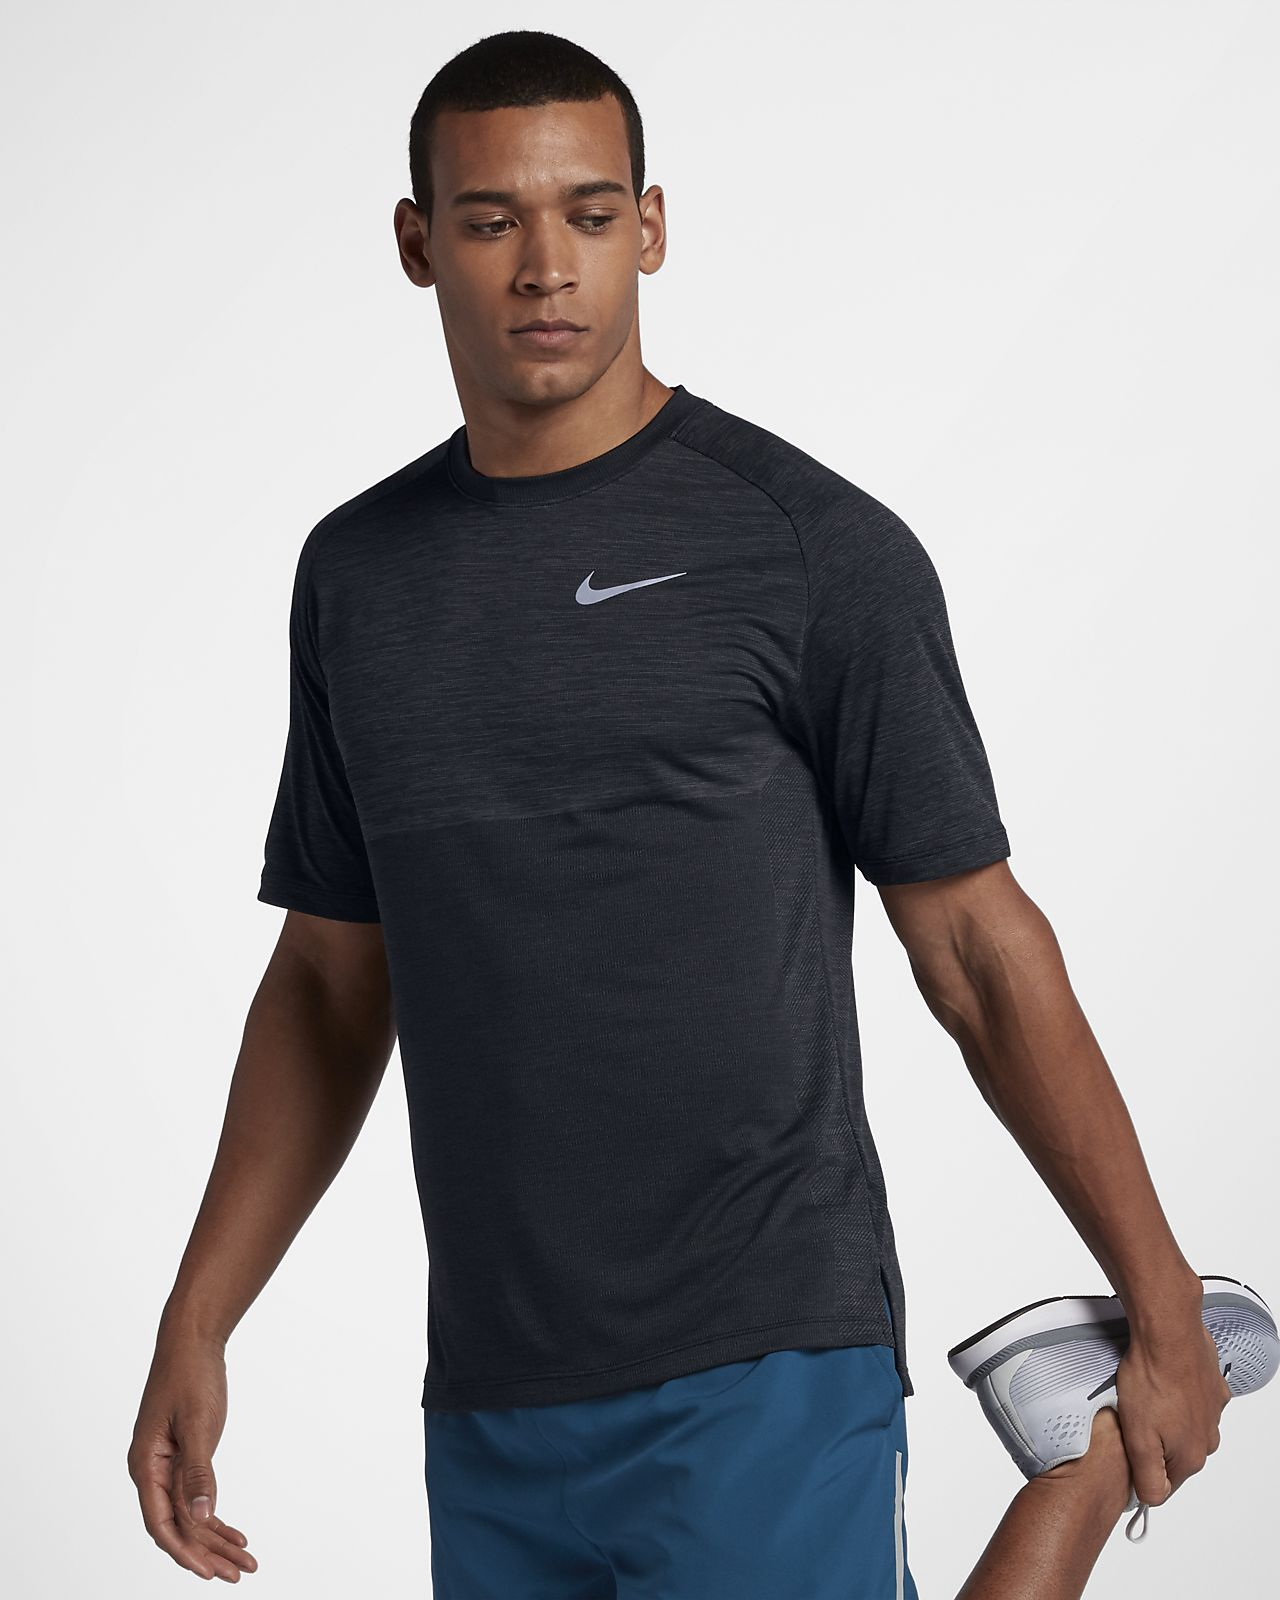 3f575a8090a Nike Dri-FIT Medalist Men s Short-Sleeve Running Top. Nike.com